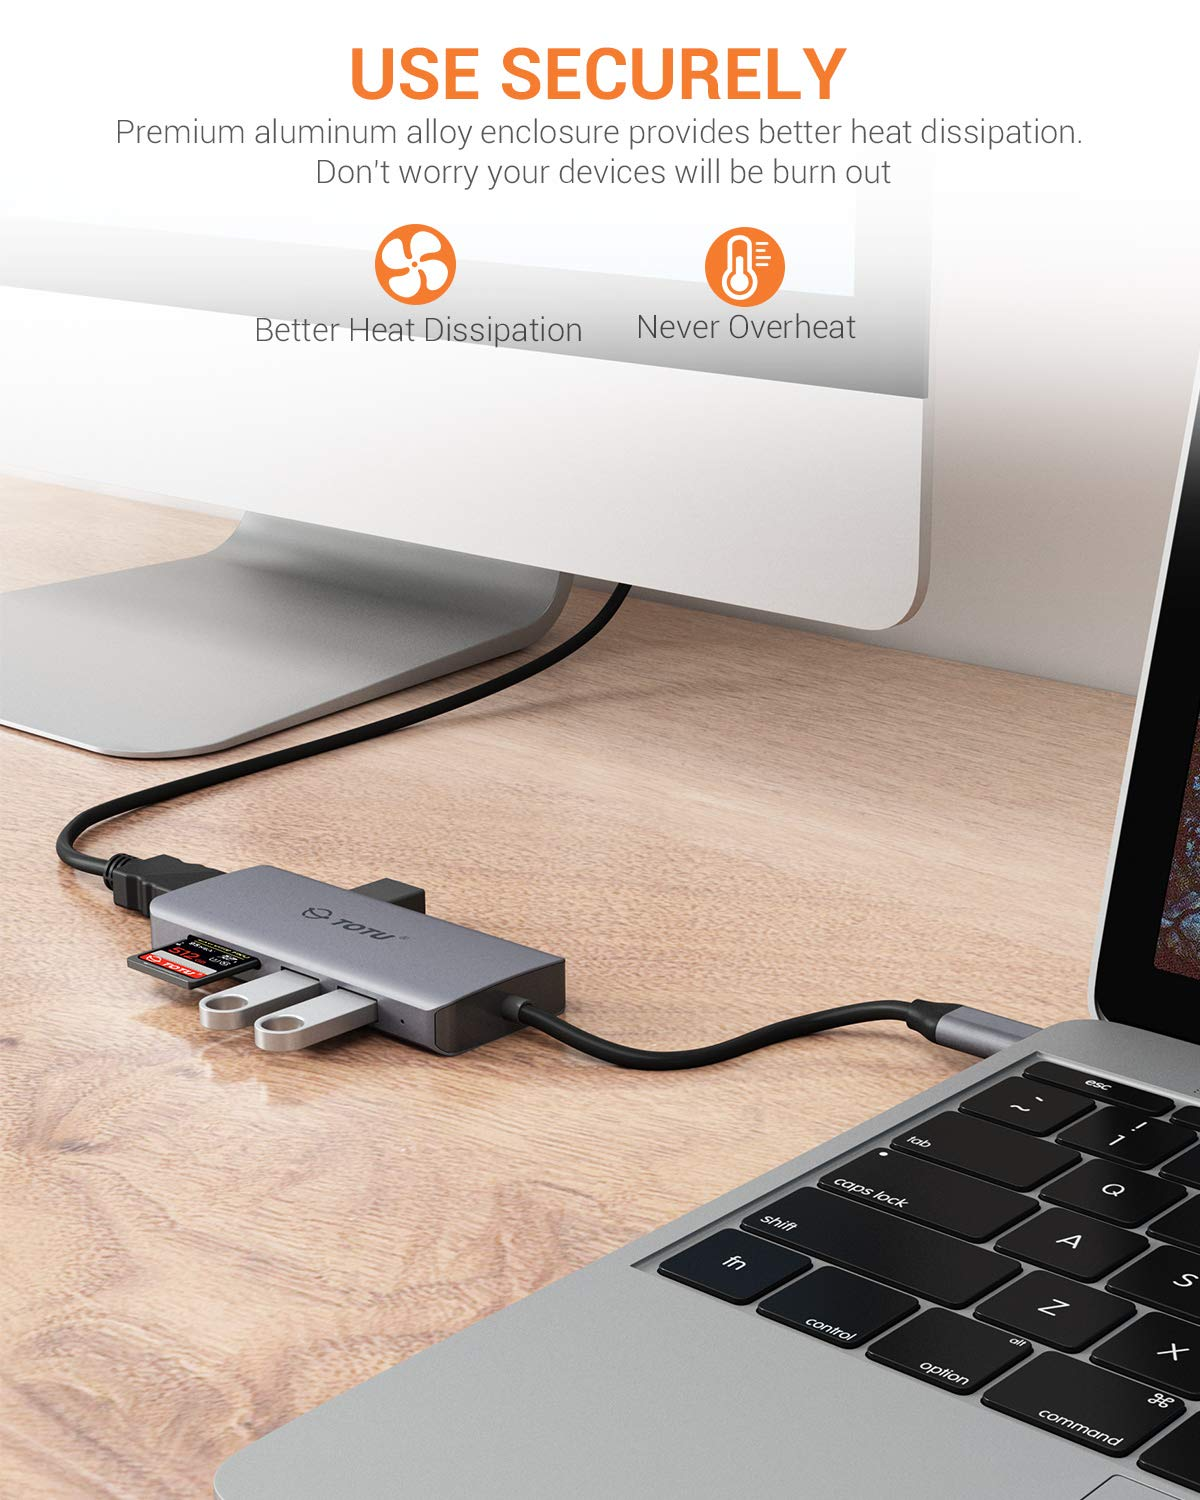 USB C Hub, TOTU 6-in-1 Type C Hub with 2 USB 3.0 Port,1 USB 2.0 Port,4K HDMI,SD/TF Card Port,Compatible for MacBook/Pro/Air 2016/2017/2018 and More USB C Devices (Gray) by TOTU (Image #7)